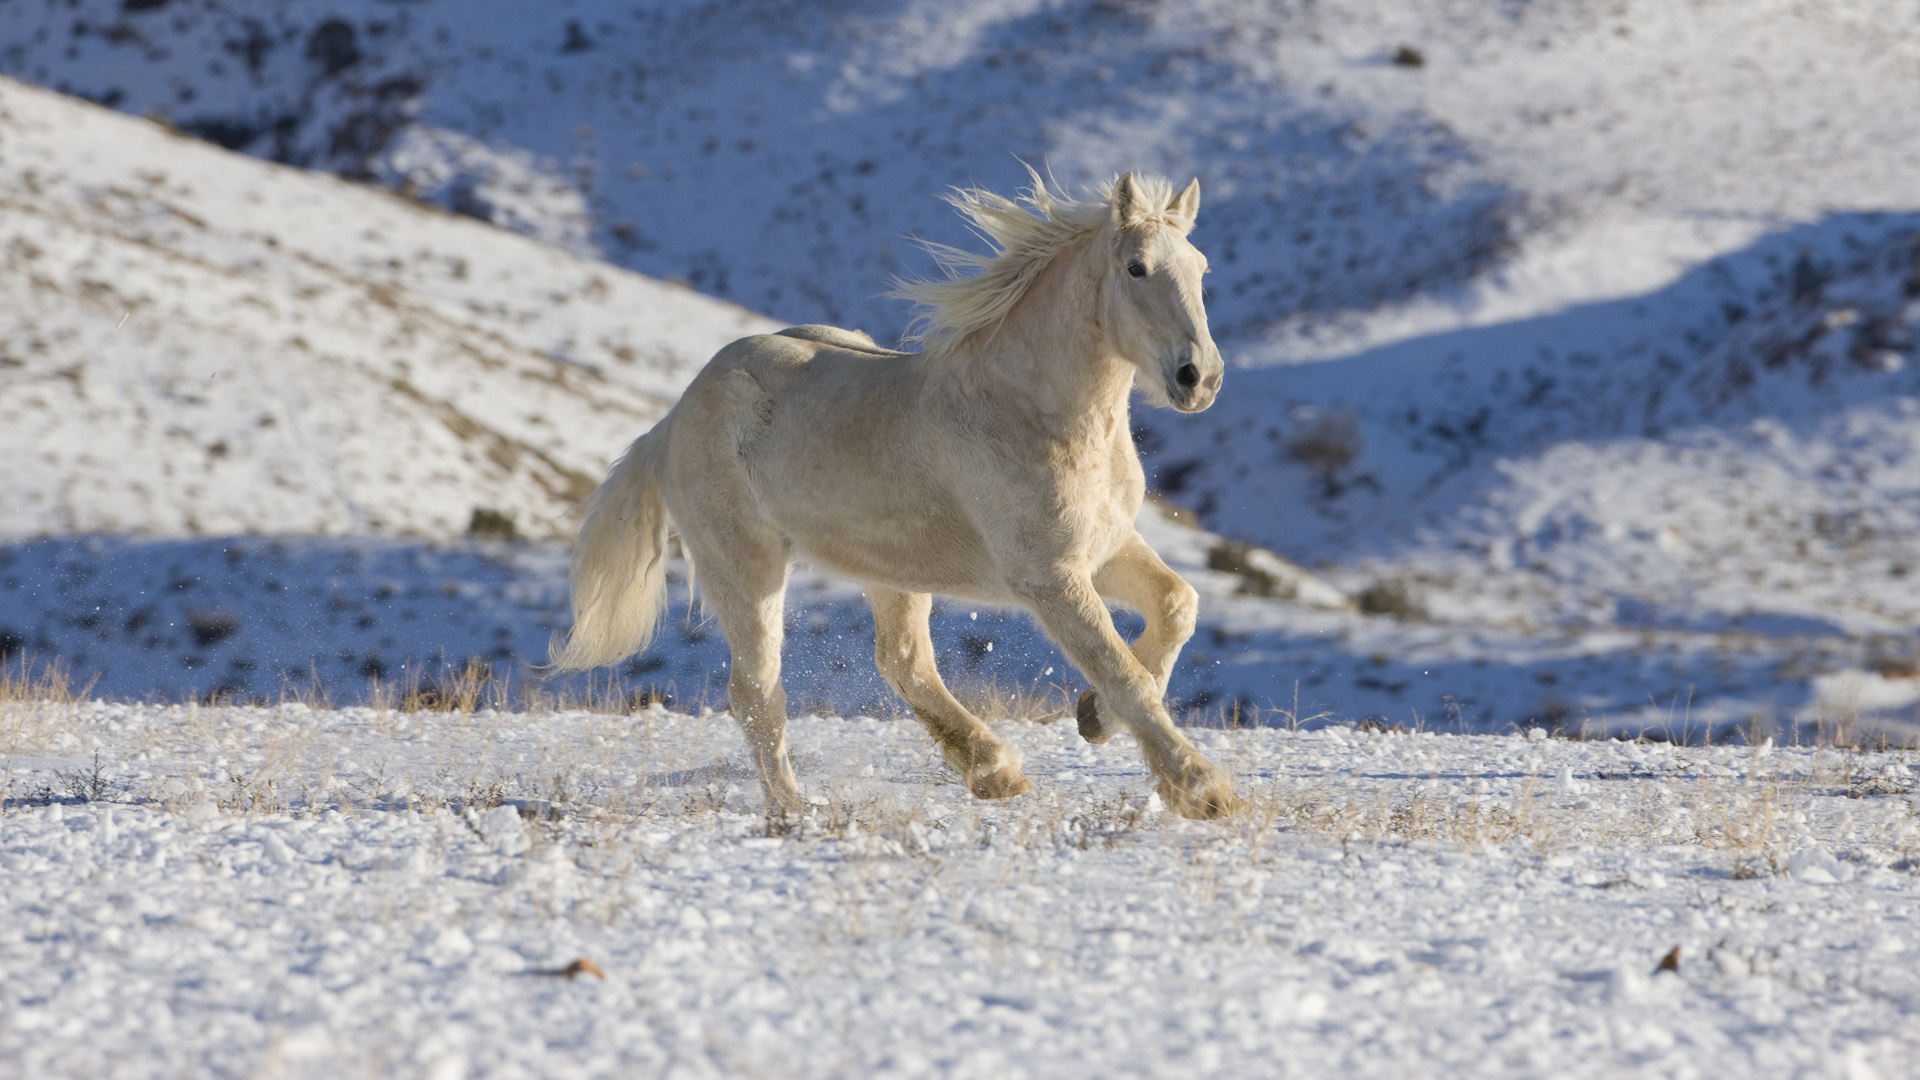 40653 download wallpaper Animals, Horses screensavers and pictures for free